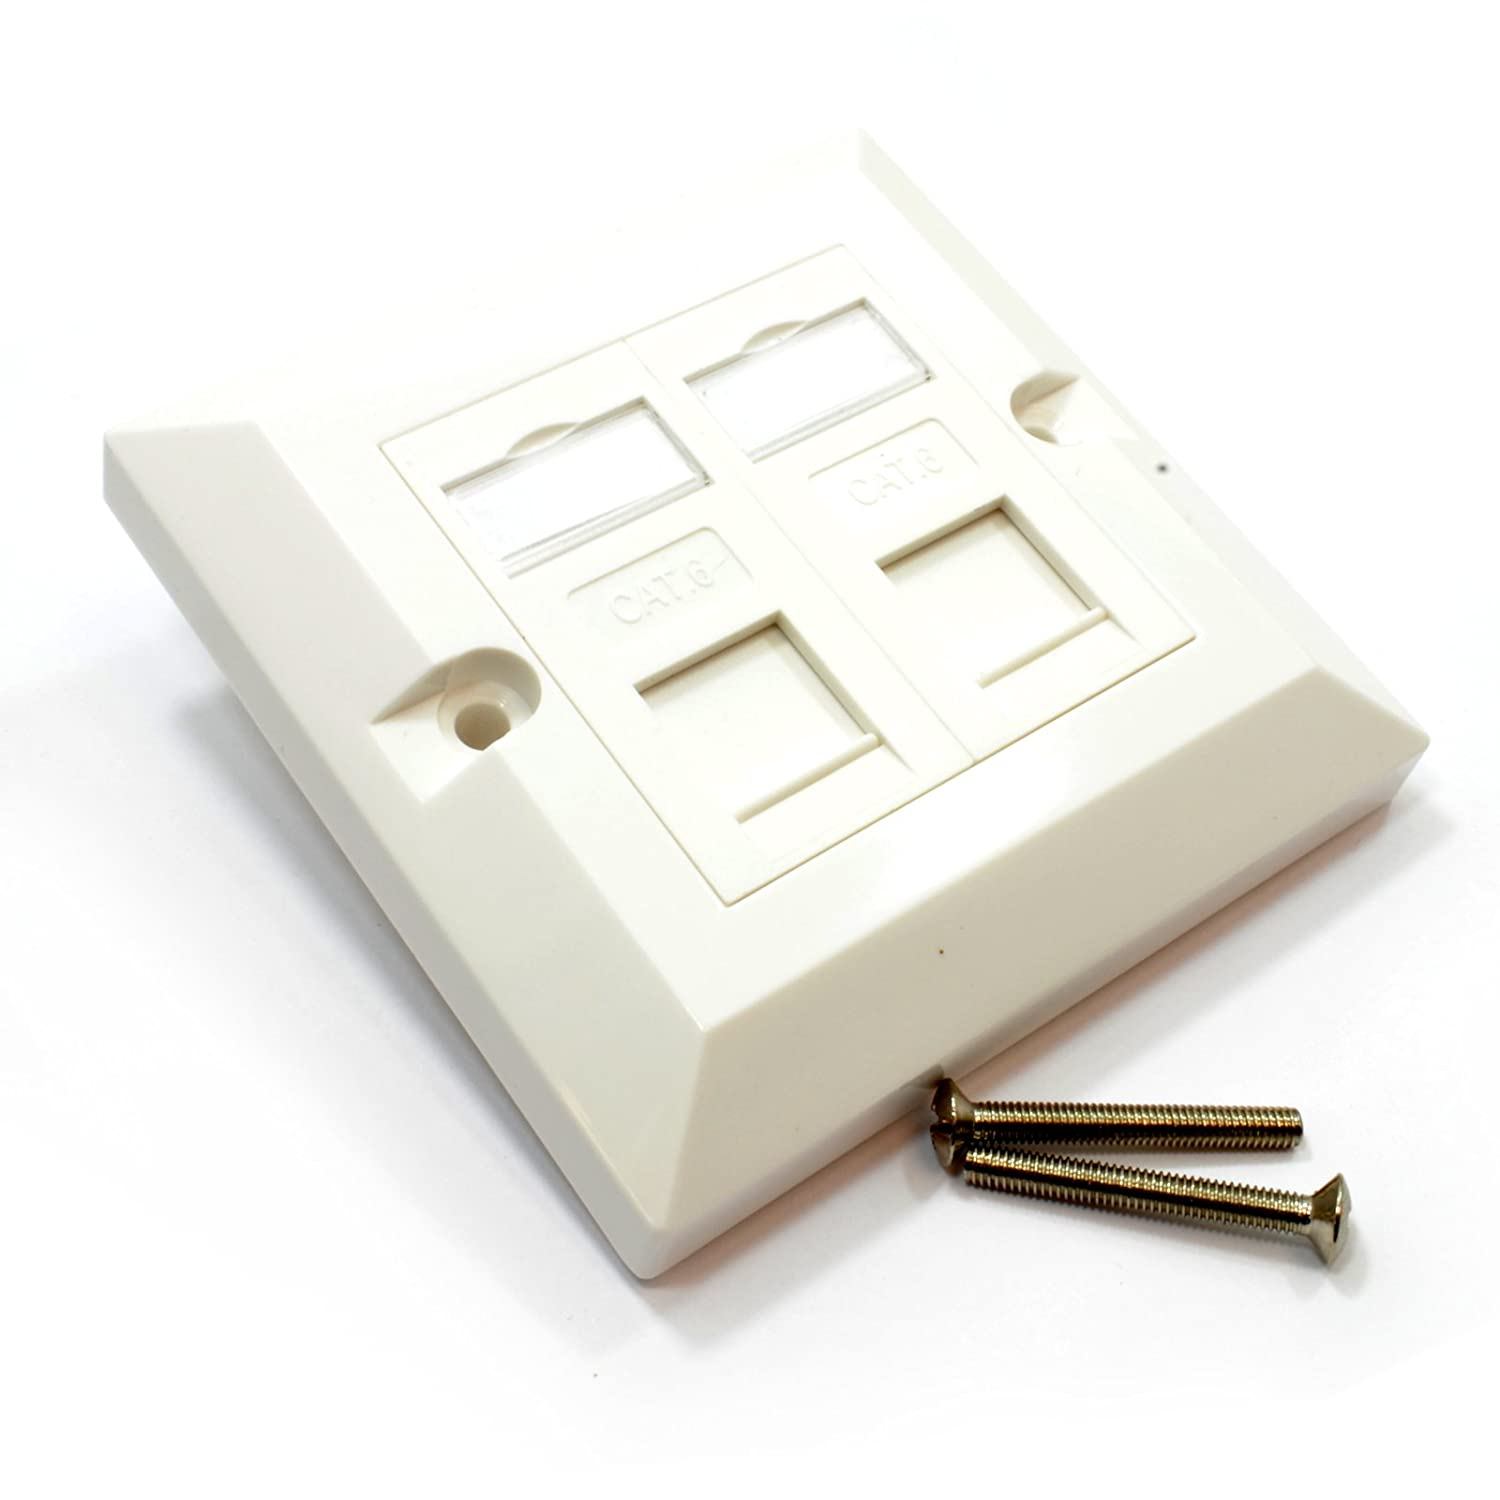 Pro Signal Cs13673 Rj45 Face Plate Wall Sockets Cat6 Double 2 Port Wiring Cat 6 Faceplate With Keystones Jacks Computers Accessories